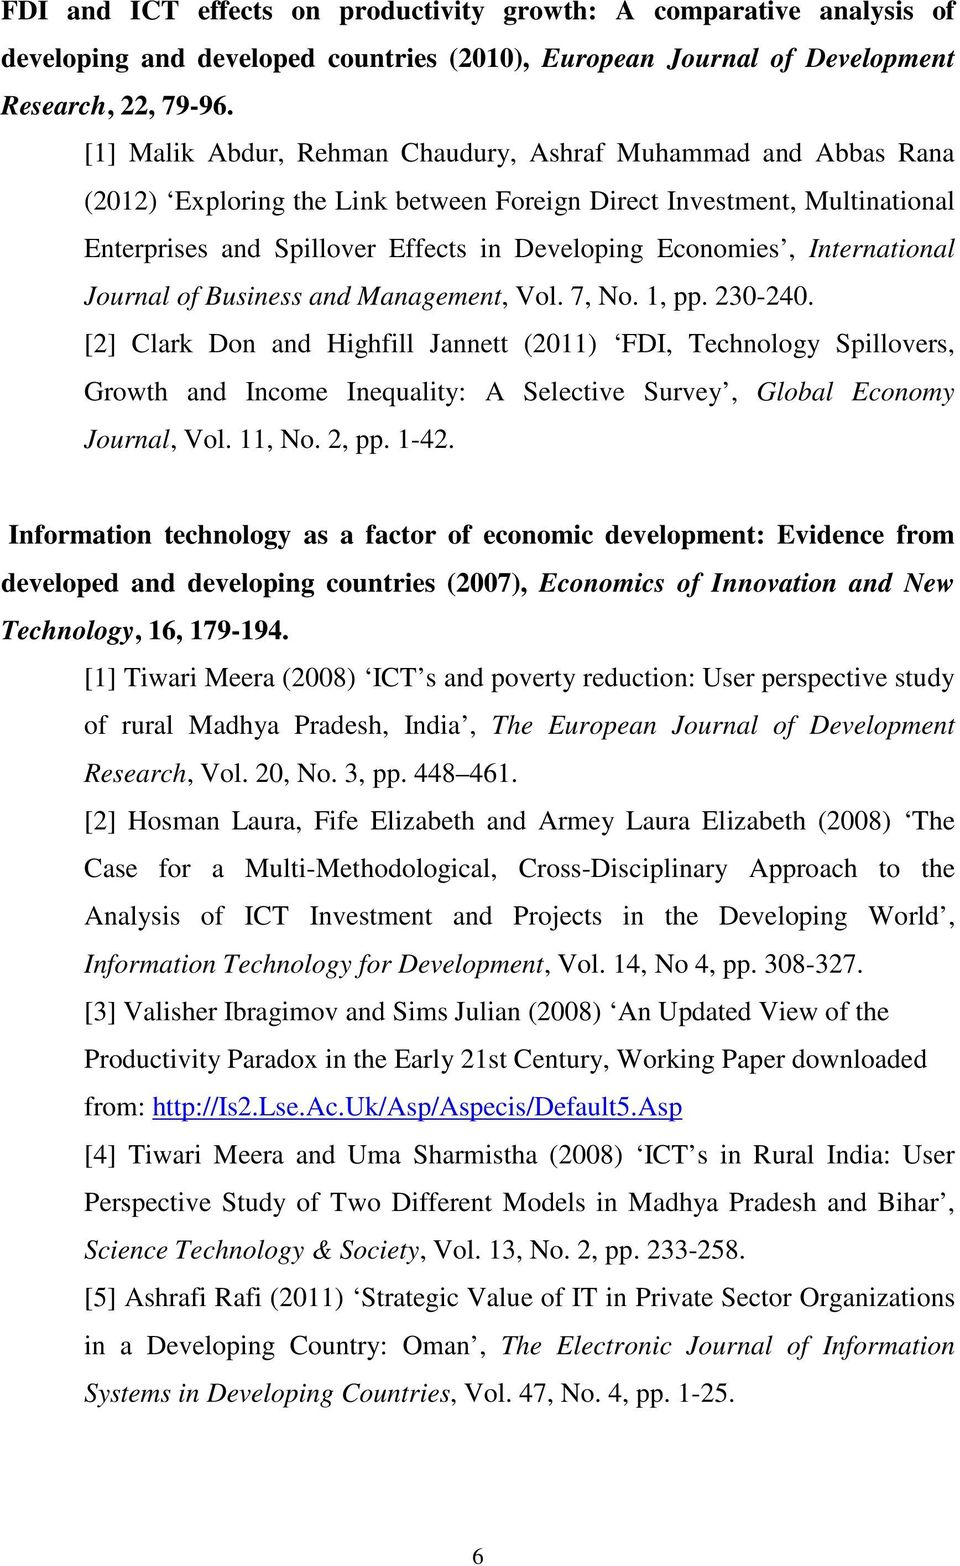 International Journal of Business and Management, Vol. 7, No. 1, pp. 230-240.